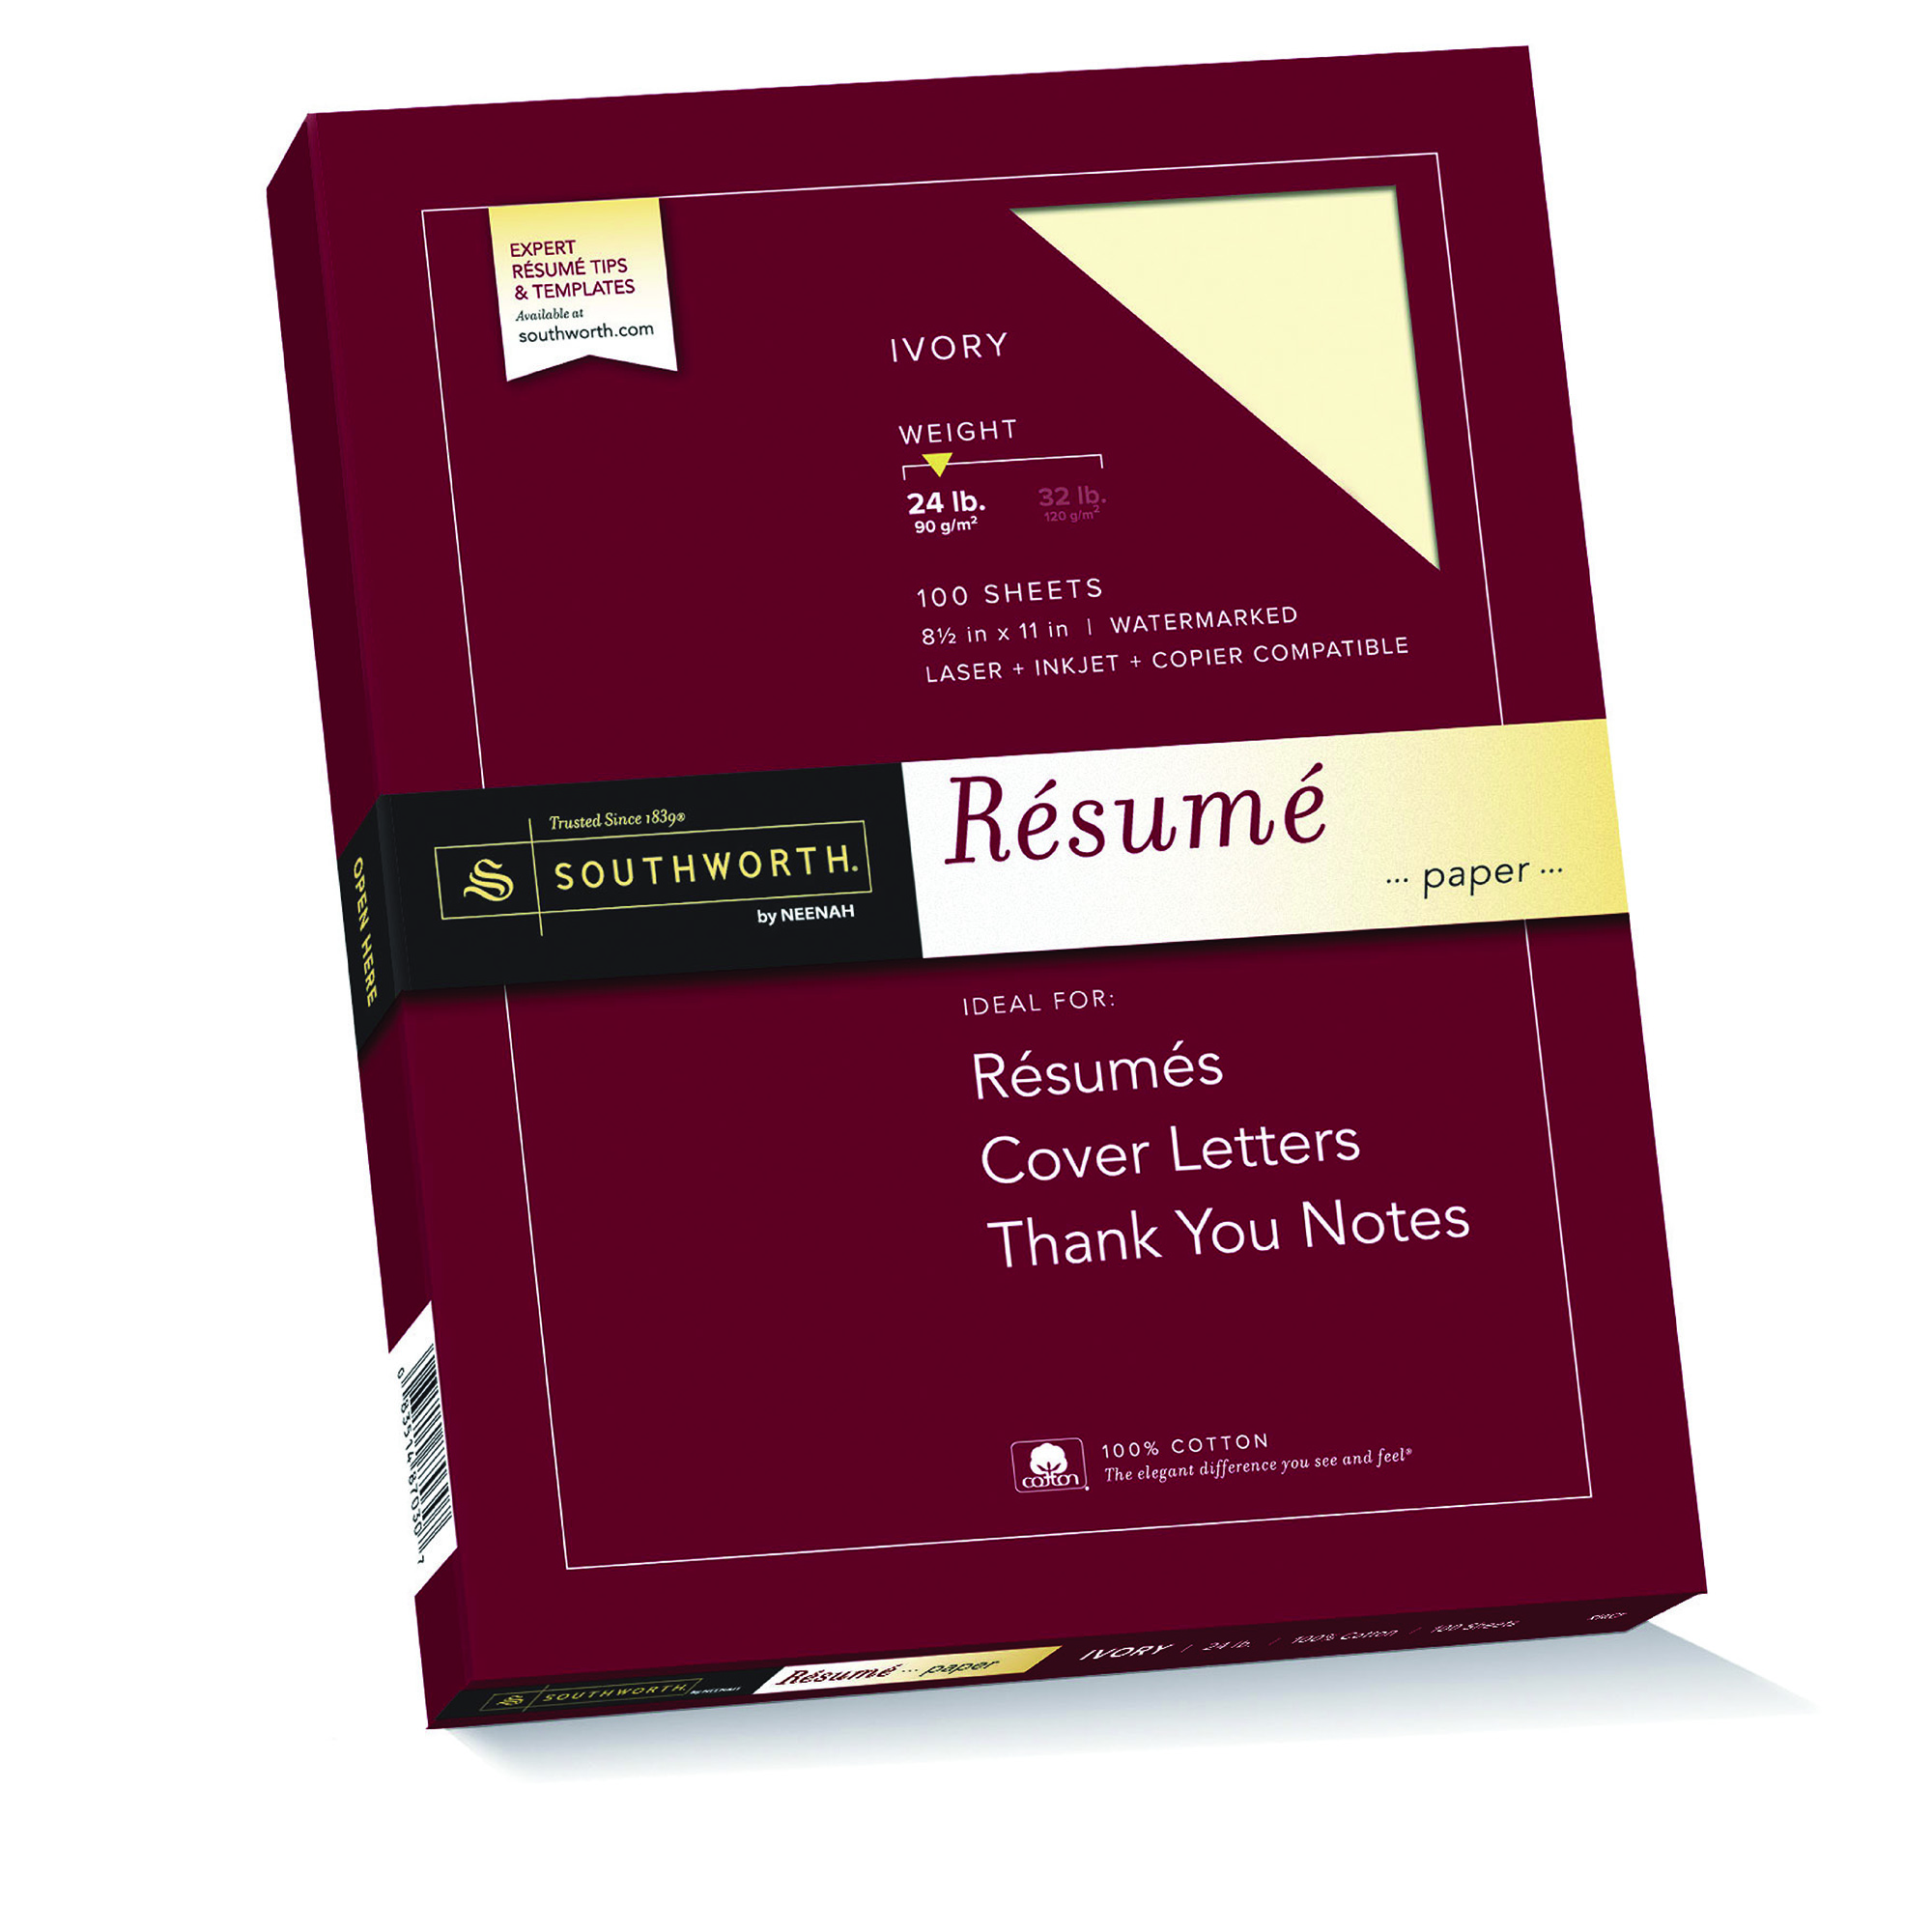 southworth 100  cotton resume paper  8 5 x 11 u0026quot   24 lb